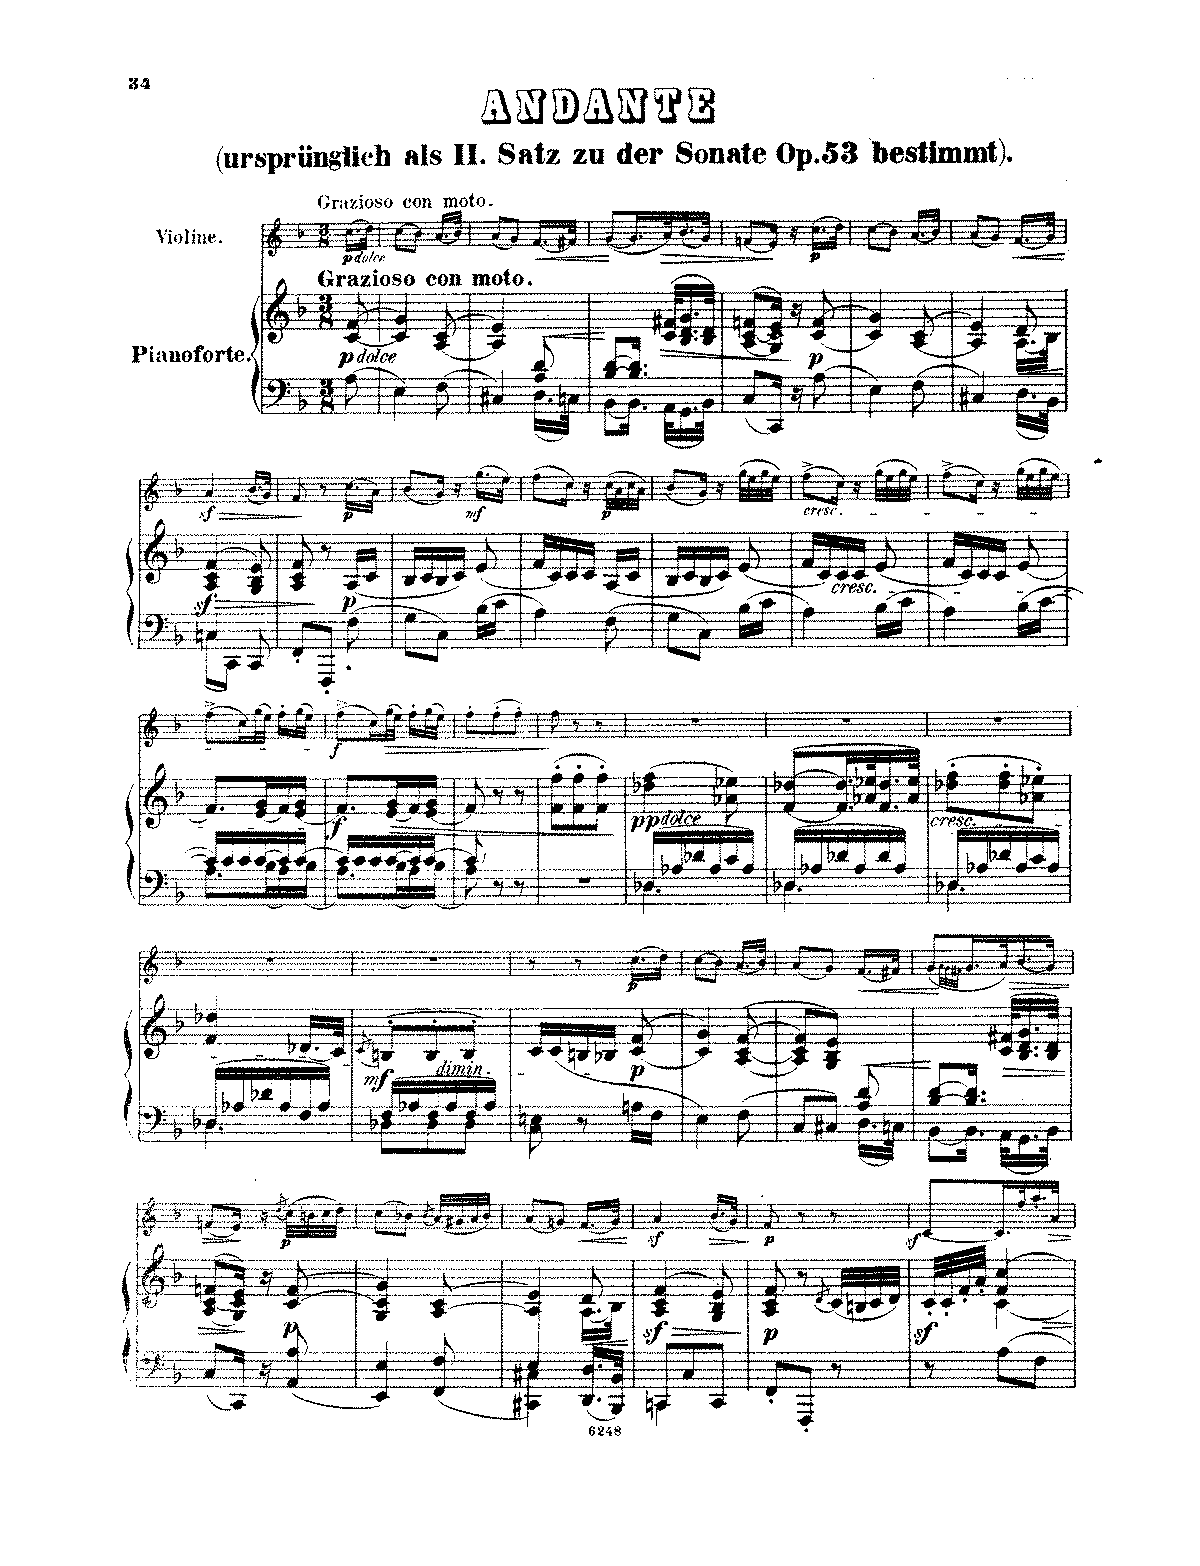 PMLP30951-Beeth Andante No 10 of Her Kl St vol. 3 Beethoven cmplt.pdf